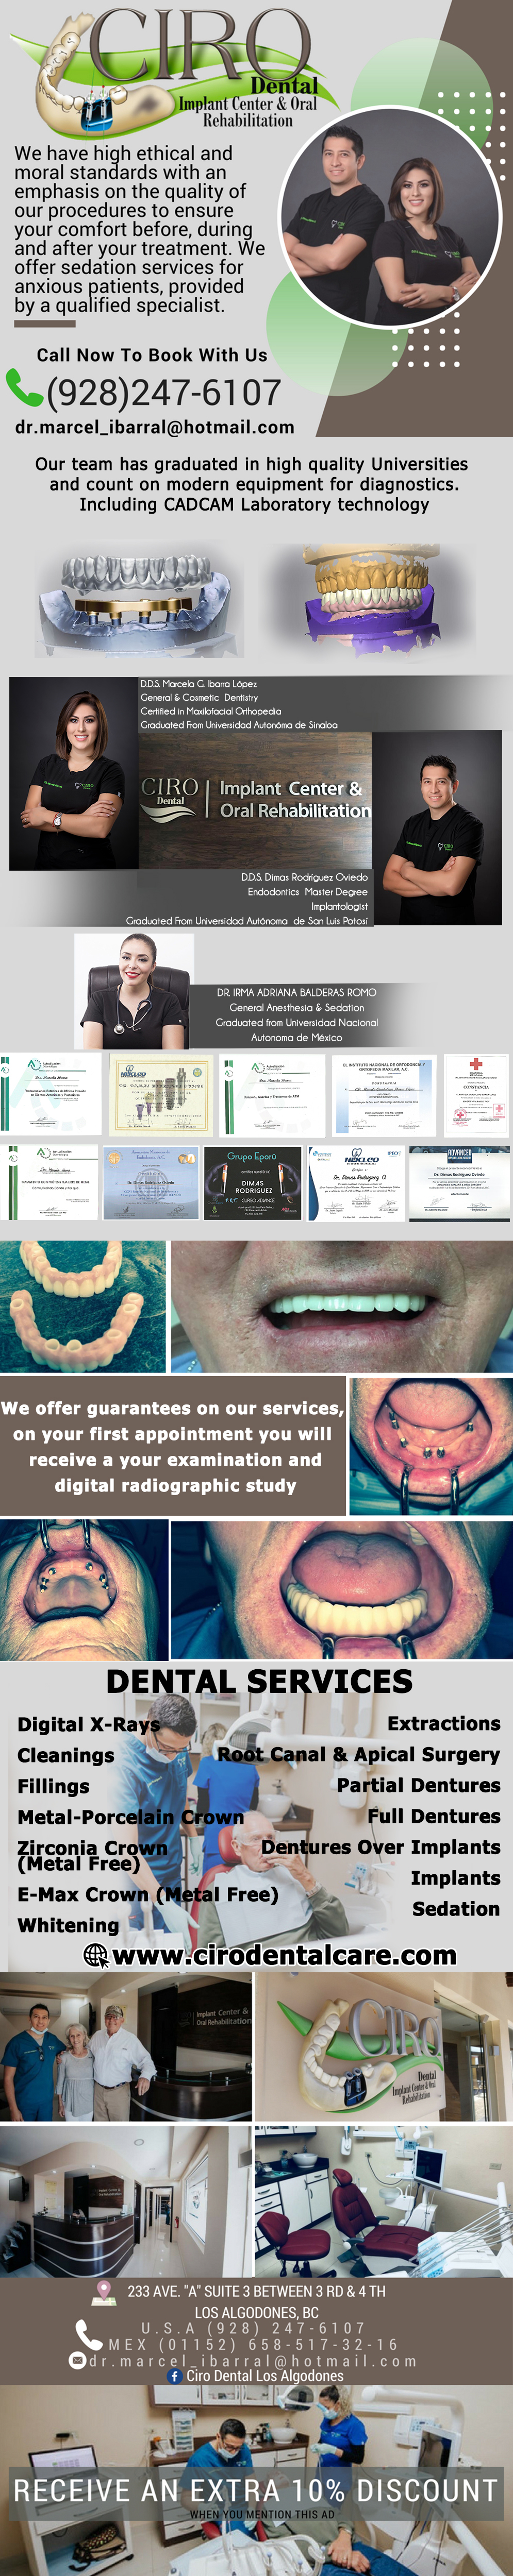 CIRO DENTAL<br>  DDS Marcela G. Ibarra / DDS Dimas Rodríguez O. Endodontics in Algodones  in Algodones  DDS Marcela G. Ibarra<br>  IMPLANT CENTER & ORAL REHABILITATION<br> DDS Dimas Rodriguez O.<br> ENDODONTICS MASTER DEGREE & IMPLANTS.  Dental Services: Digital X-Rays, Cleanings, Fillings, Metal-Porcelain Crown, Zirconia Crown, E-Max Crown, Whitening, Extractions, Root Canal & Apical Surgey, Partial Dentures, Full Dentures, Dentures Over Implants, Implants, Sedation.                                                            dentista dentist endodontics ciro dental implant center  oral rehabilitation dr dimas    Digital X-Rays Cleanings Fillings Metal-Porcelain Crown Zirconia Crown E-Max Crown Whitening Extractions Root Canal & Apical Surgey Partial Dentures Full Dentures Dentures Over Implants Implants Sedation  cad cam